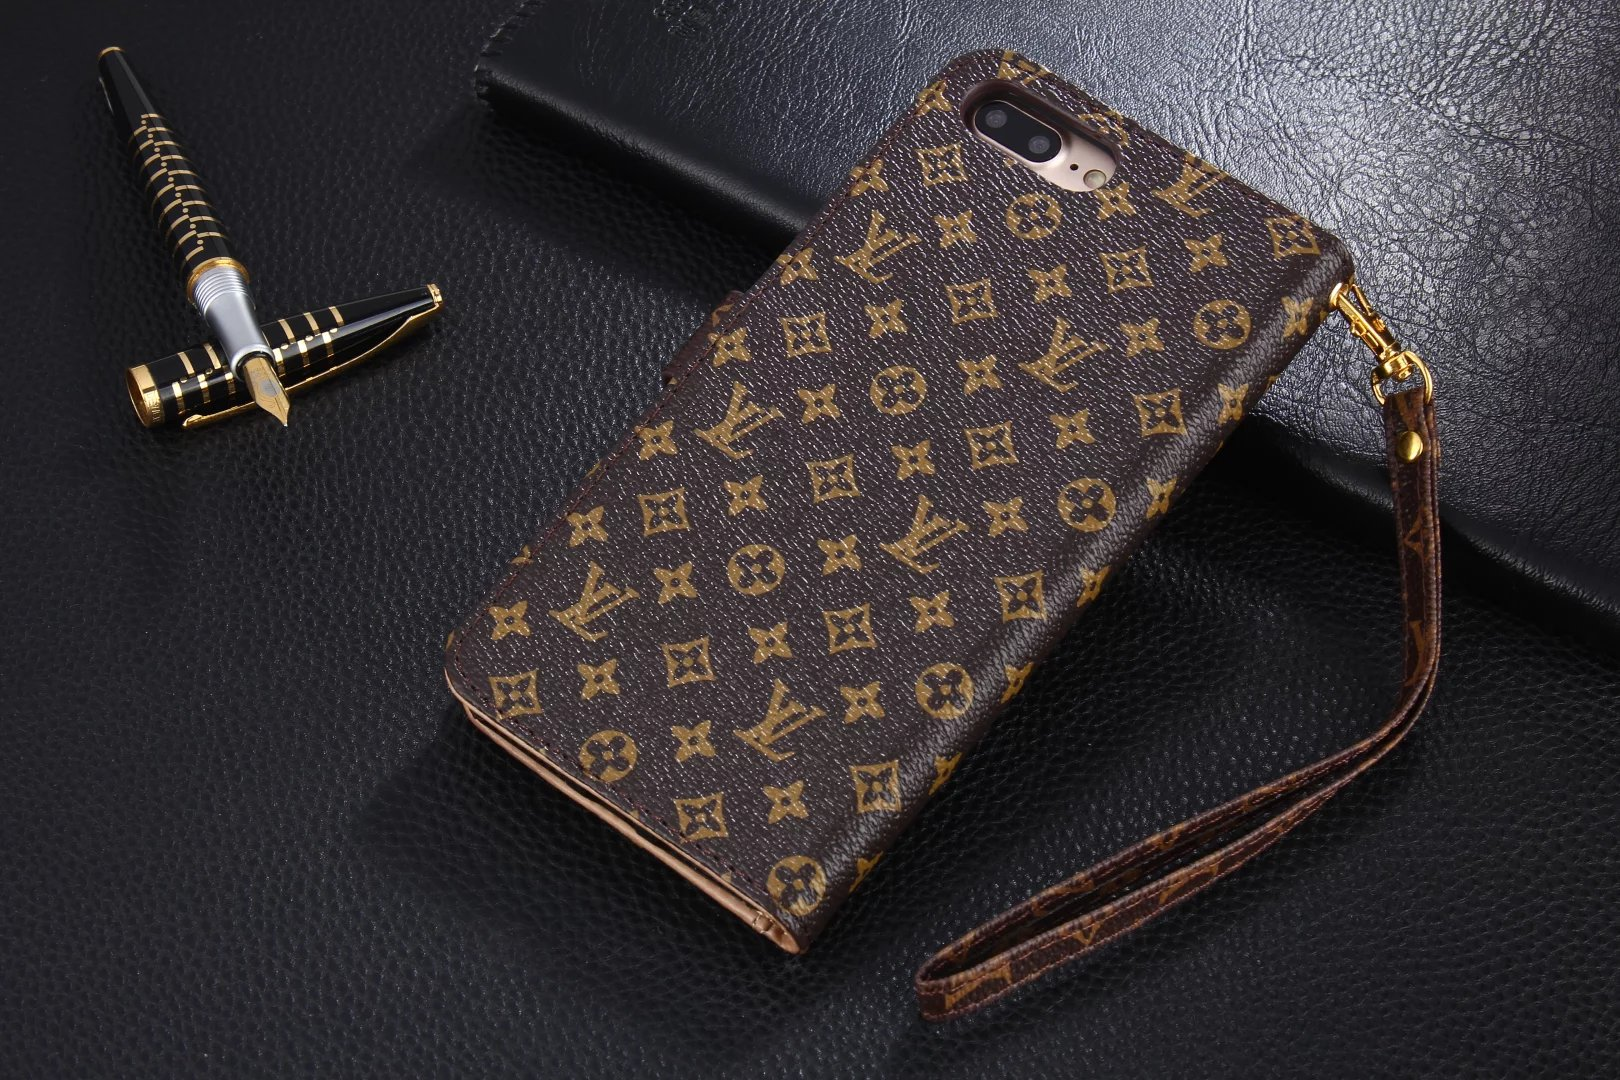 best galaxy Note8 case s view case galaxy Note8 Louis Vuitton Galaxy Note8 case damsung Note8 make your own tablet case samsung galaxy 1 cases best cases for Note8 best case for Note8 samsung galaxy a Note8